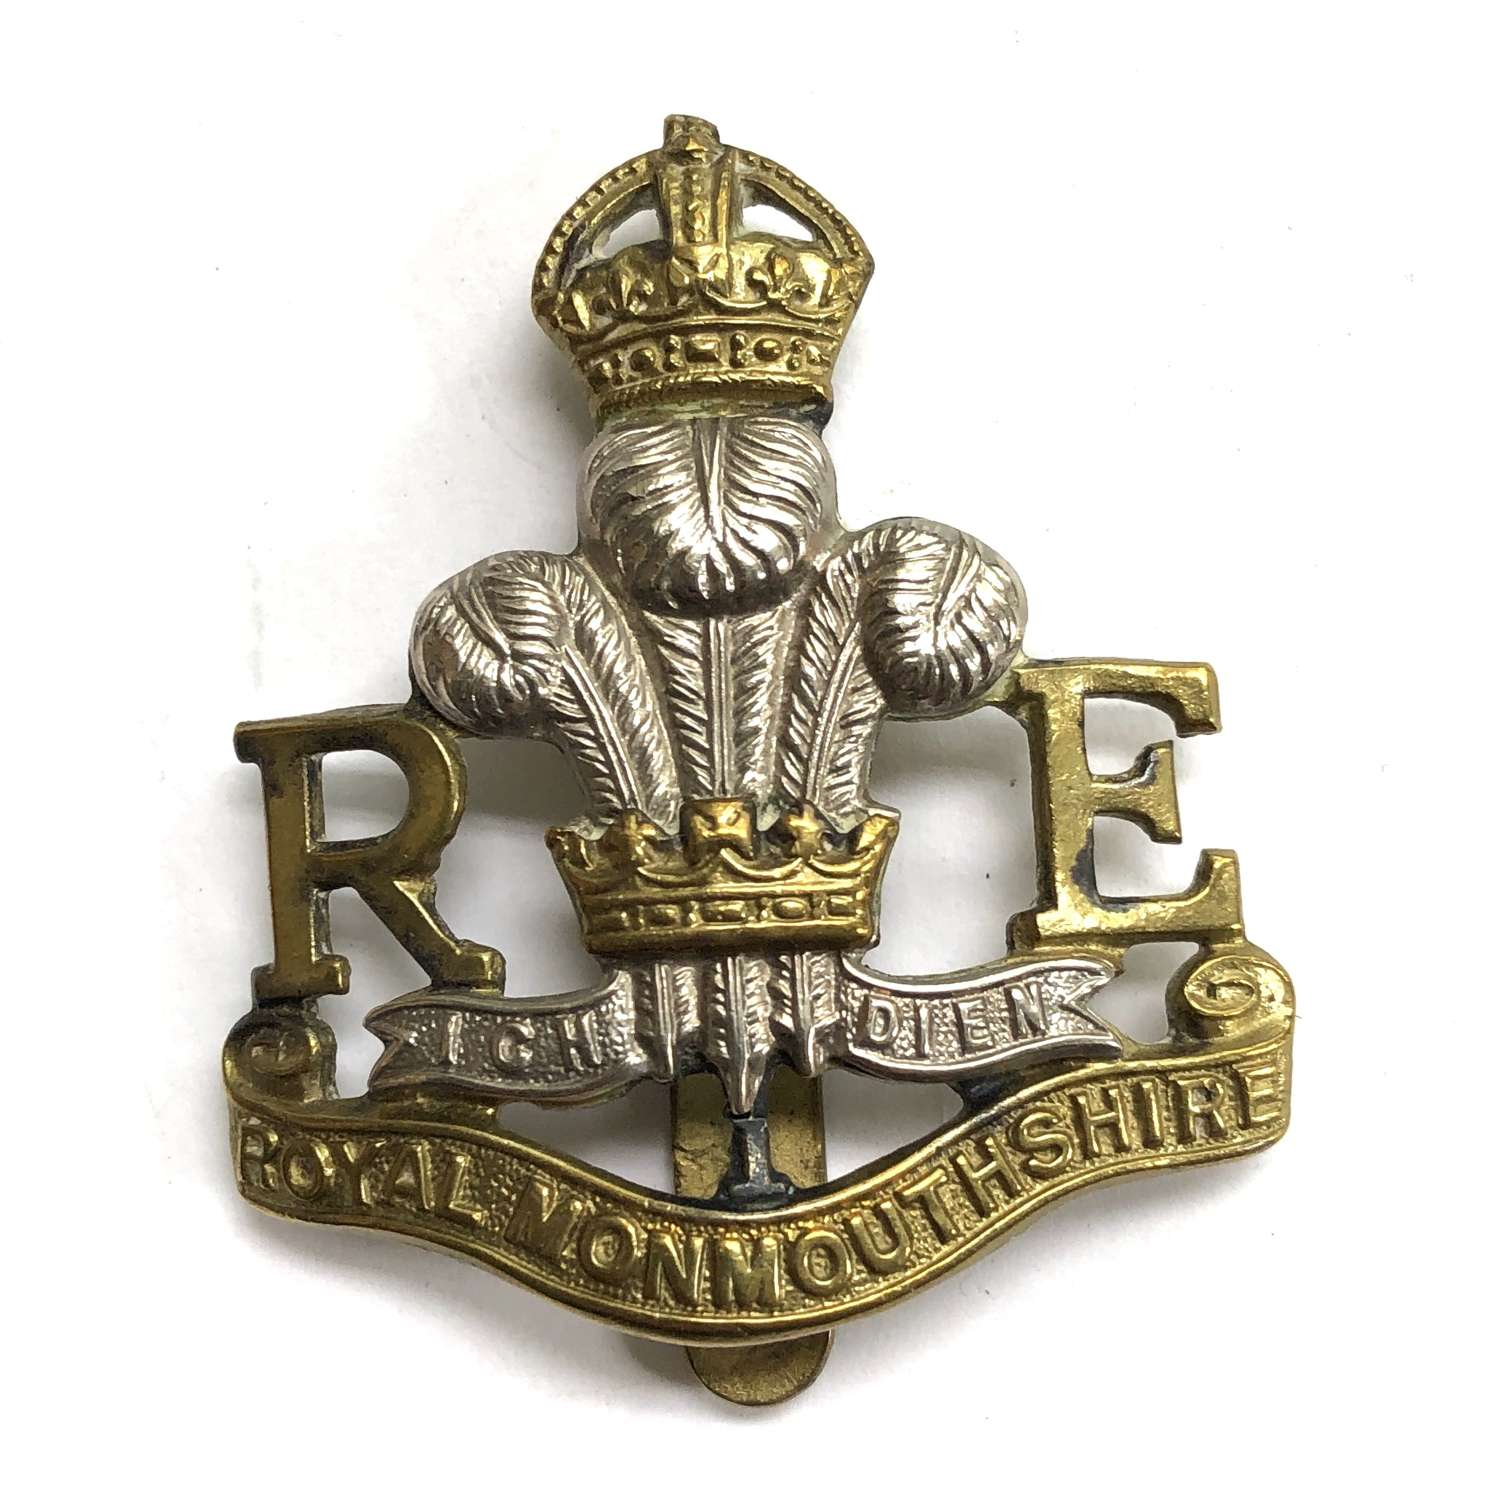 Royal Monmouthshire R.Engineers (Militia) pre 1953 cap badge by Gaunt